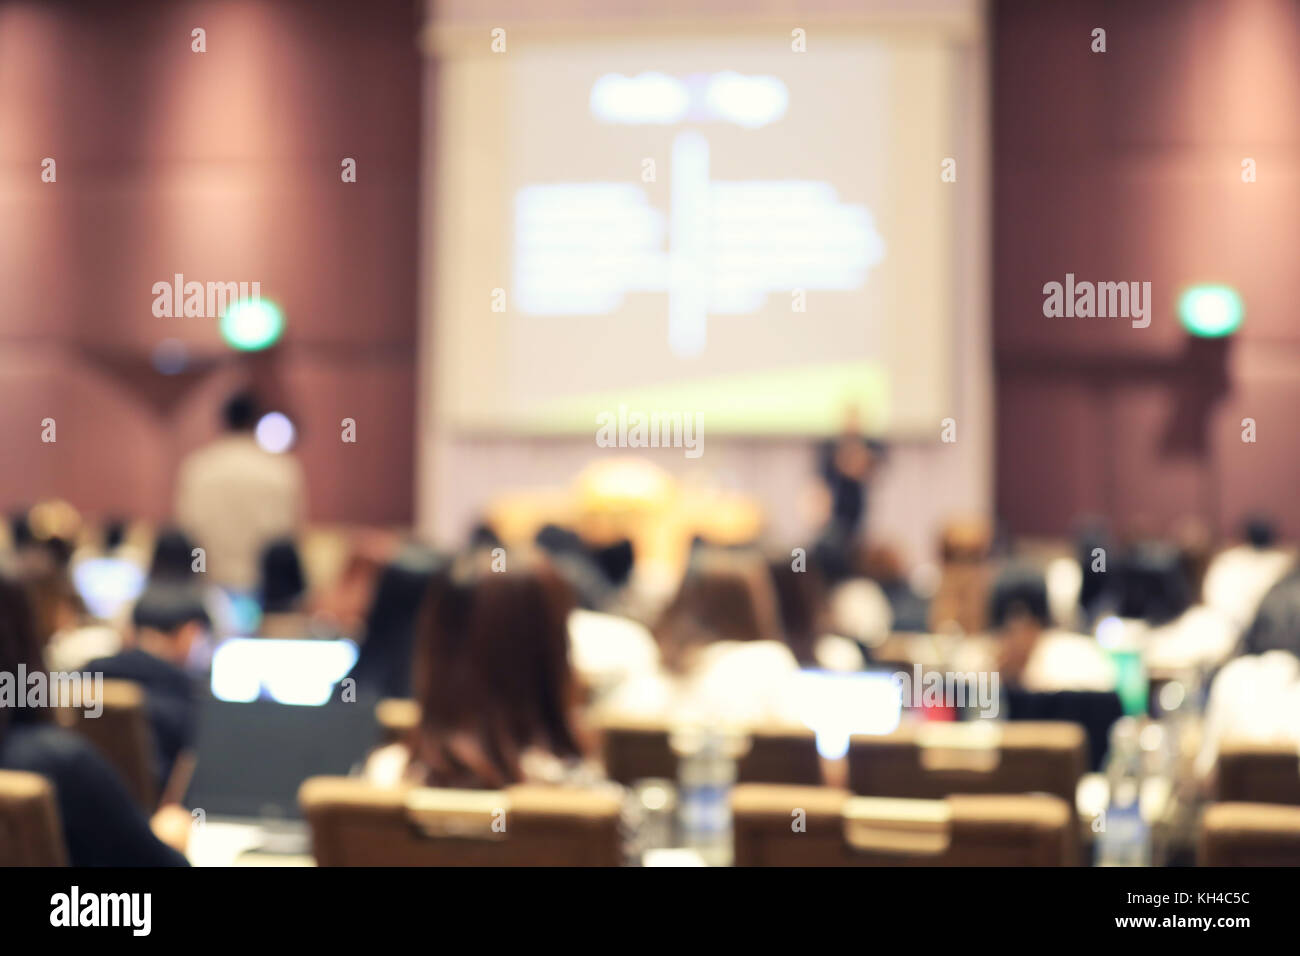 Abstract blurry background of employees seminar and De-focus teamwork staffs working meeting in conference room - Stock Image